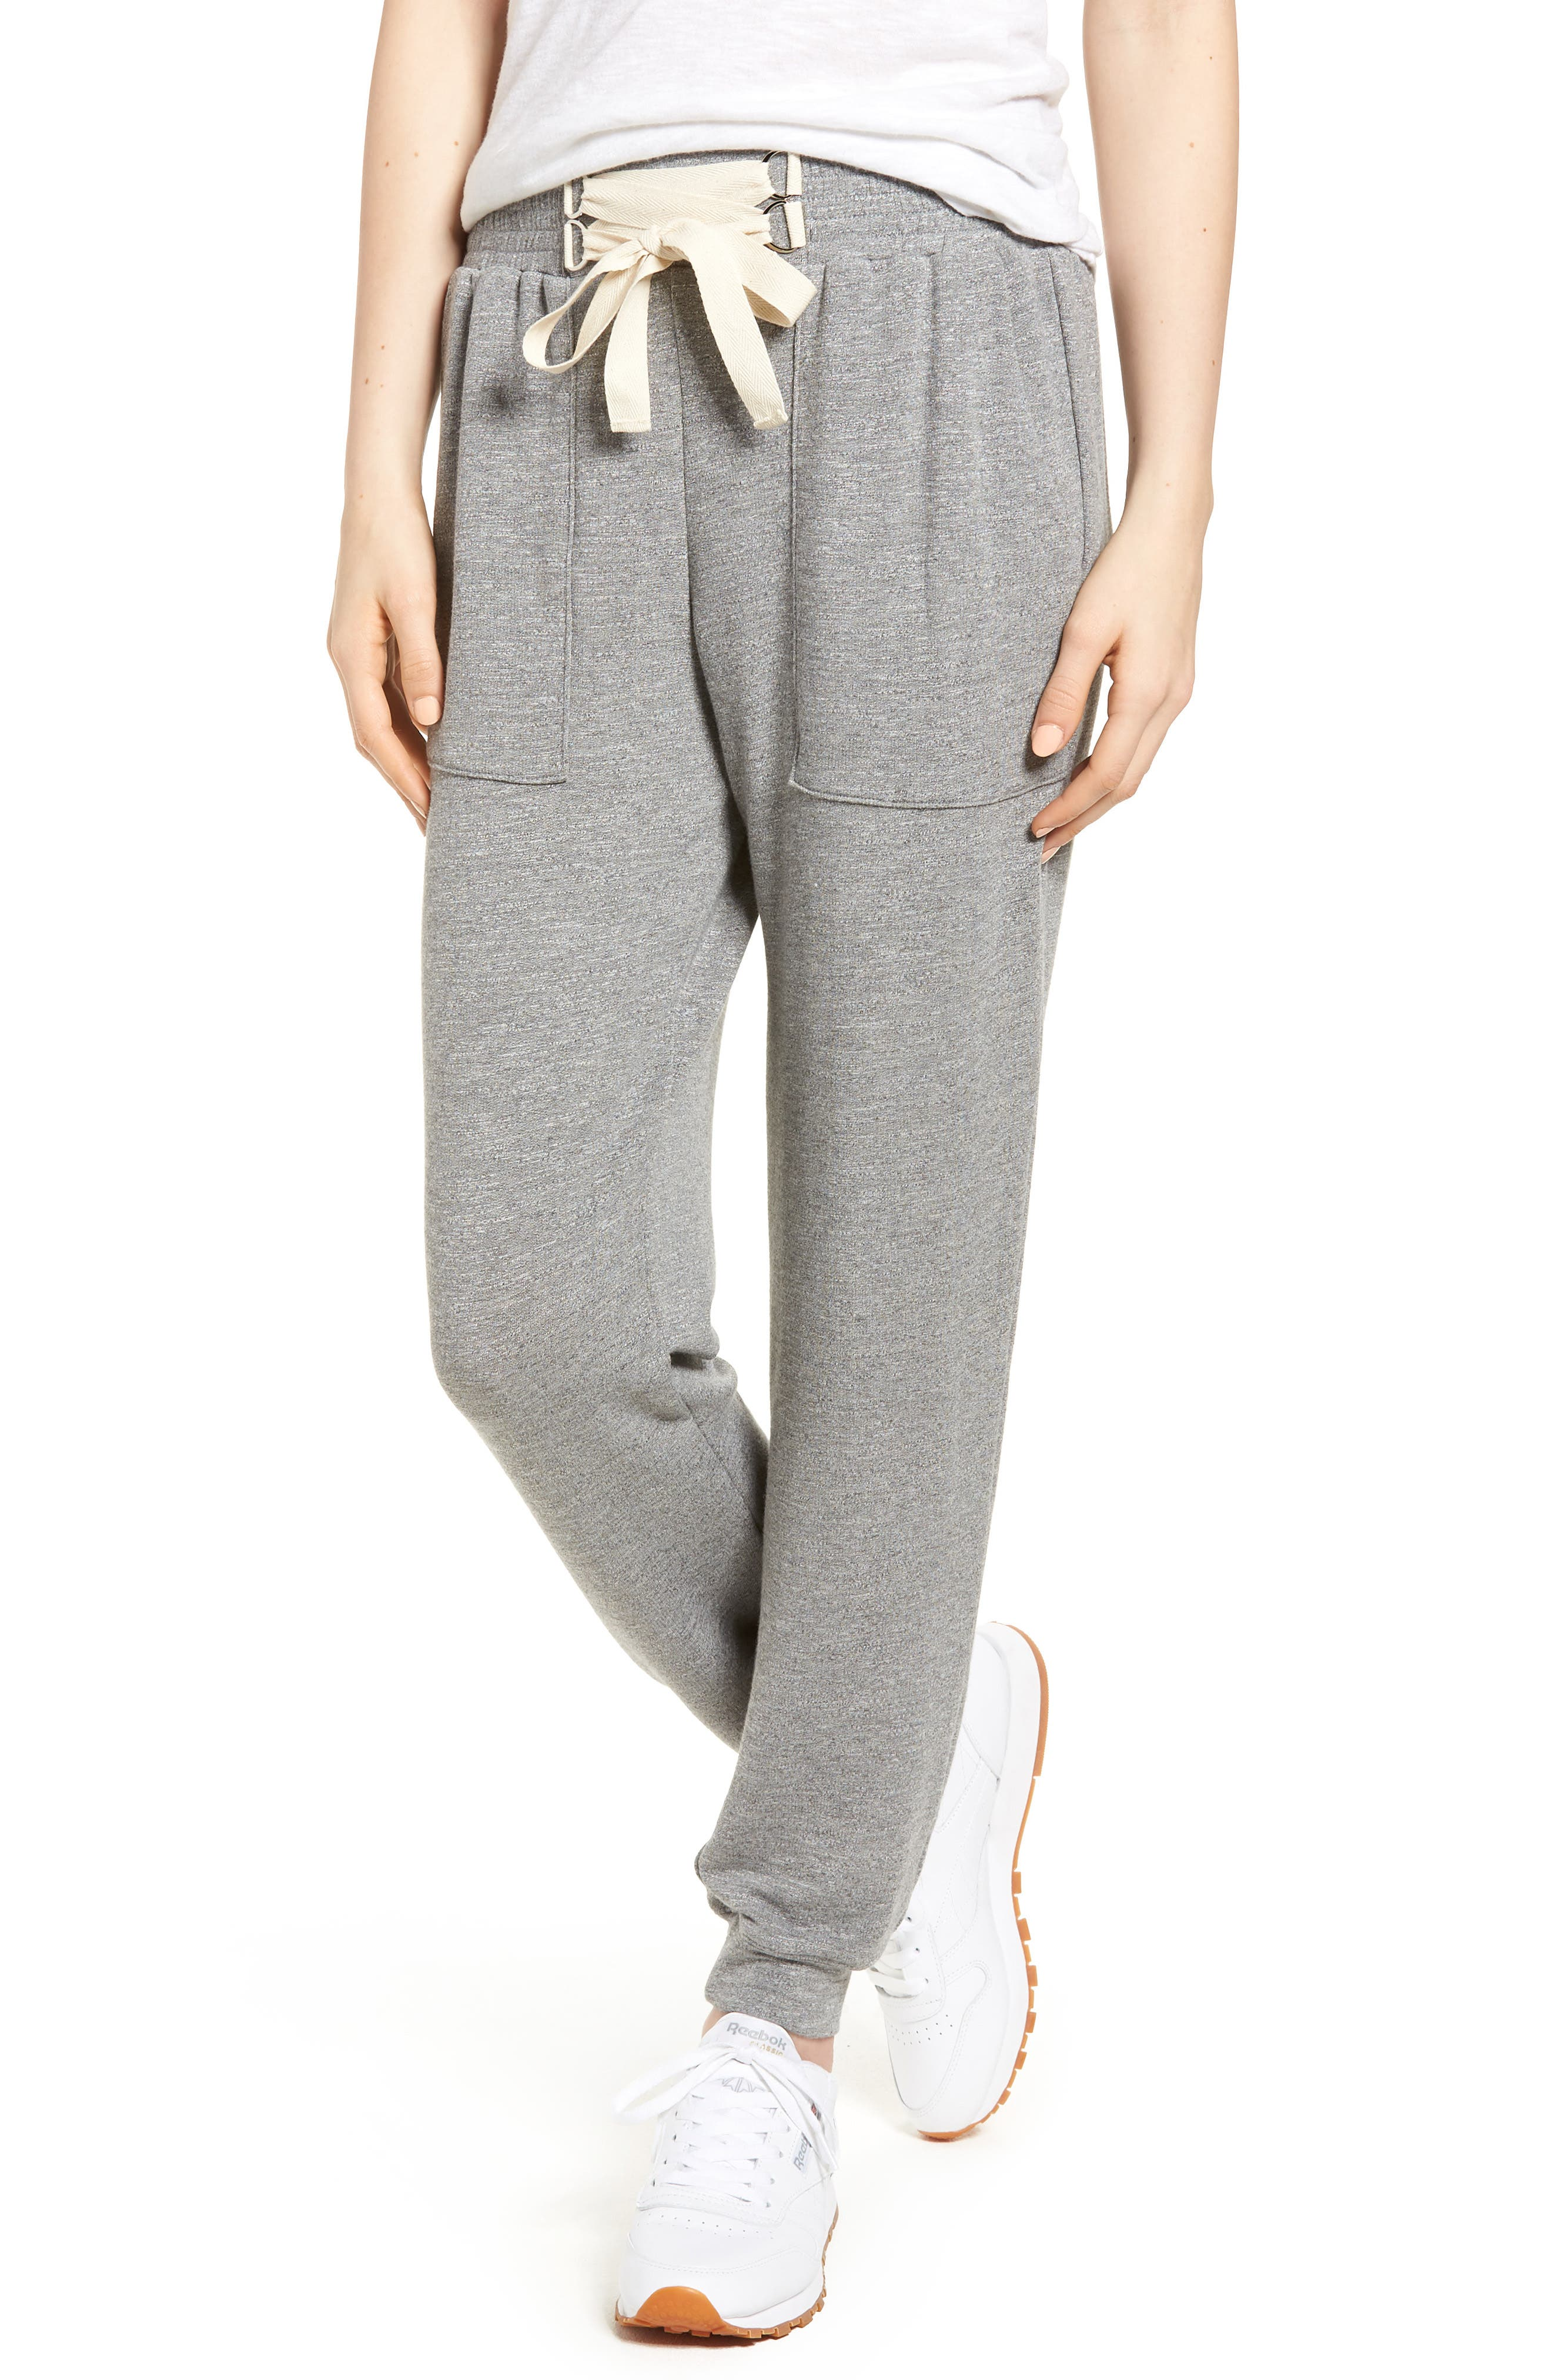 Dream Active Jogger Pants,                         Main,                         color, Heather Grey